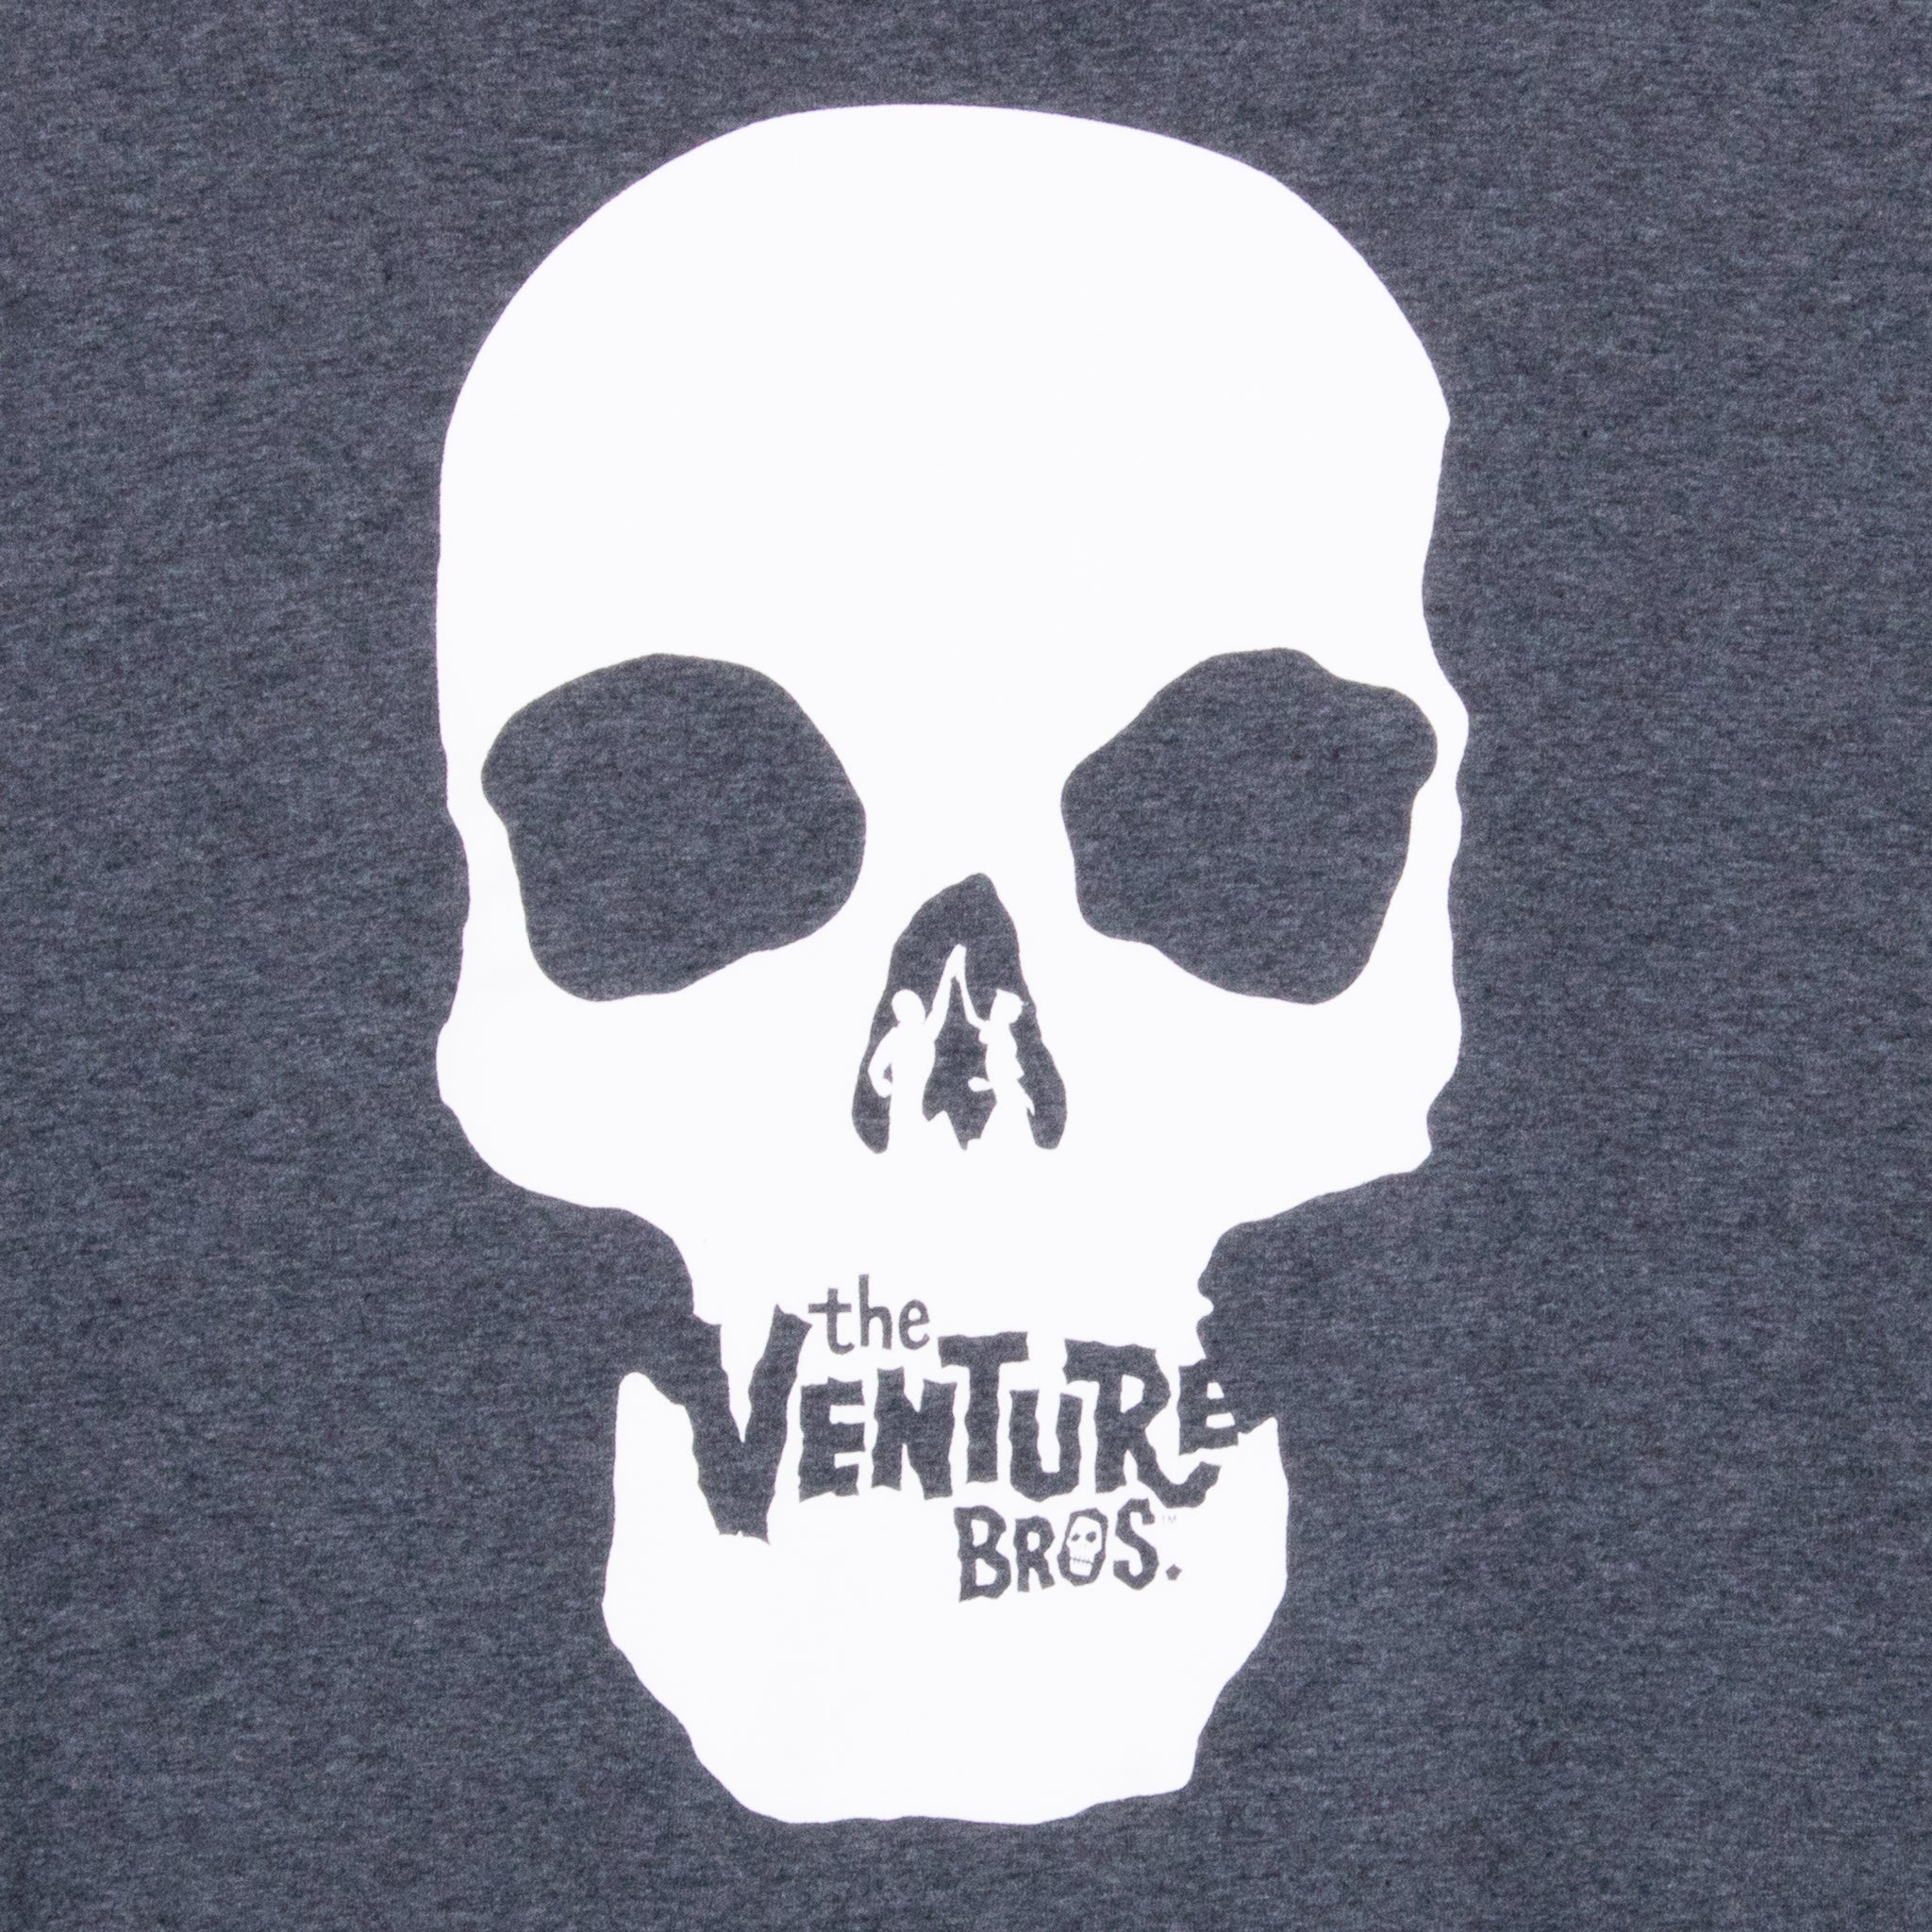 venture bros cartoon network adult swim t-shirt graphic shirt apparel culturefly